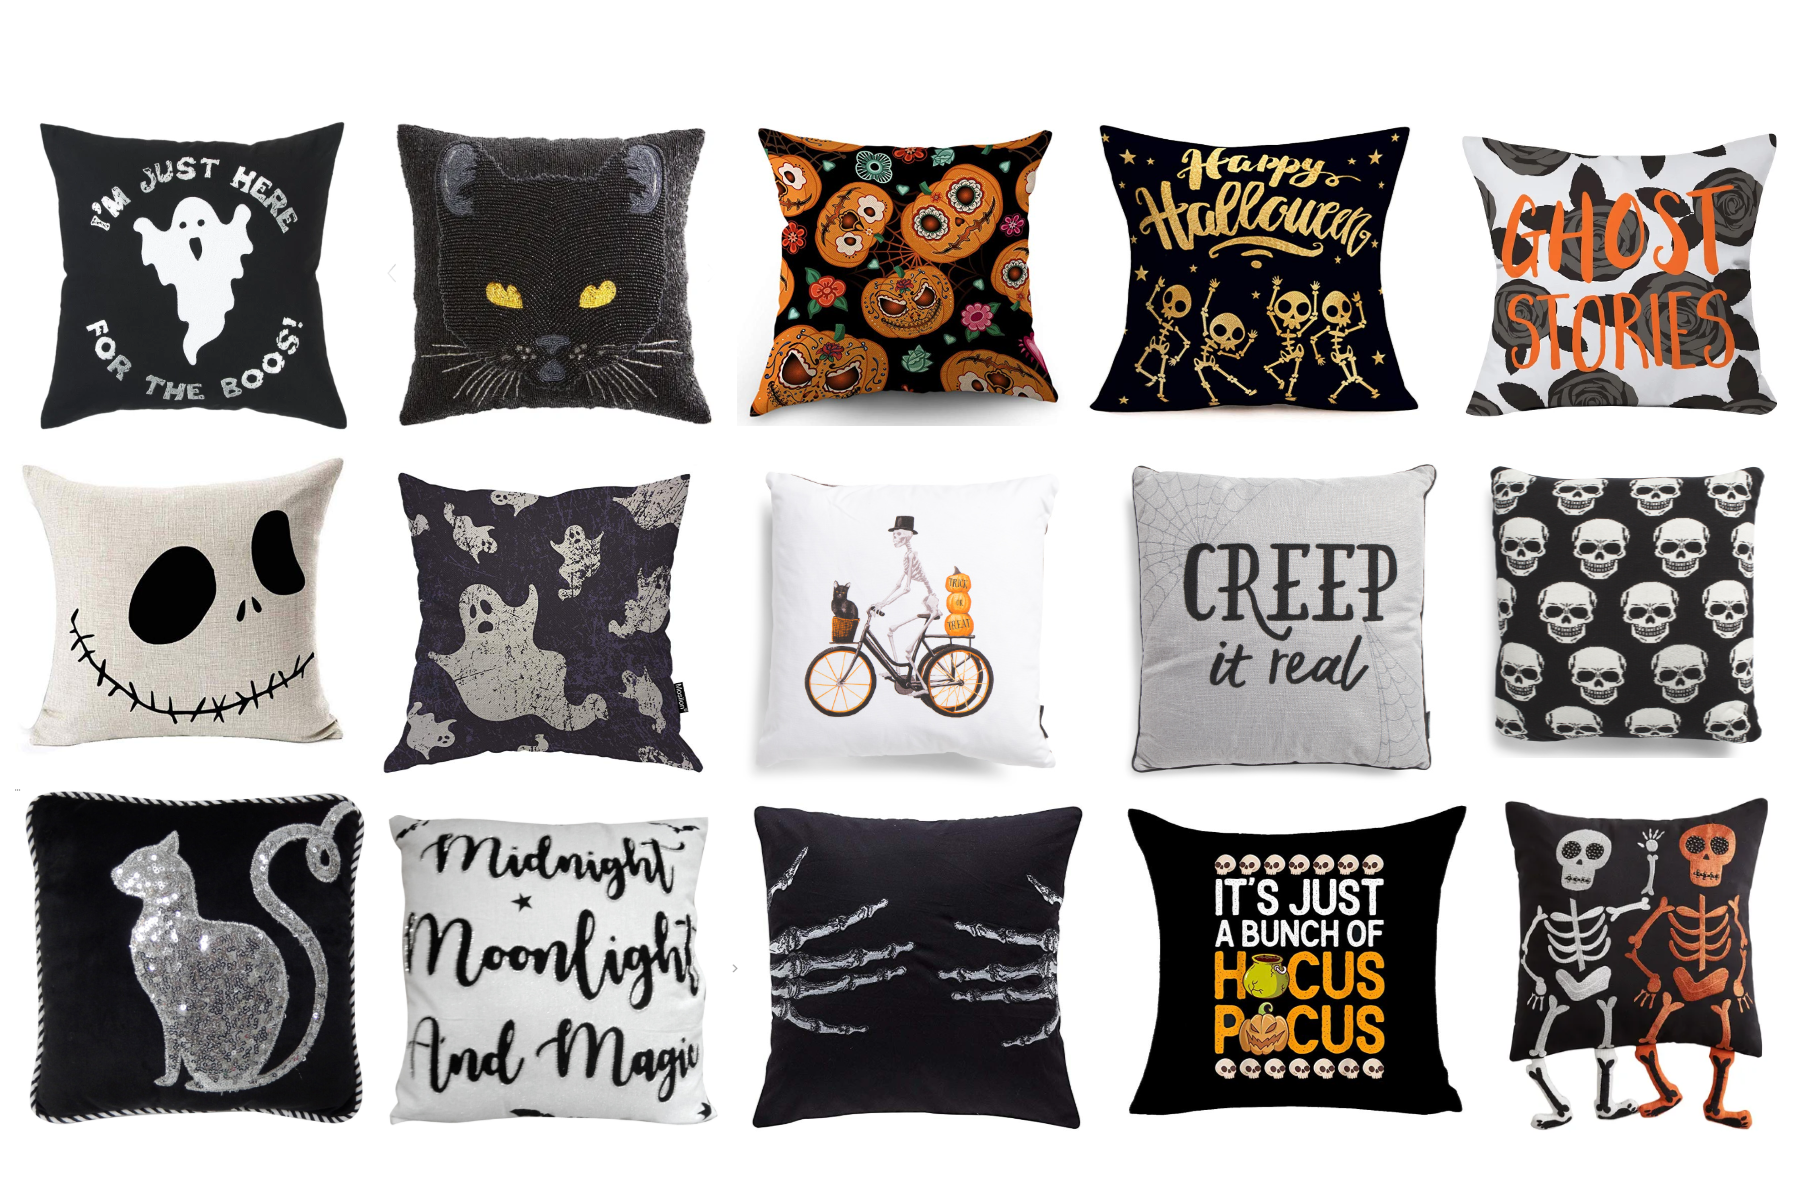 80 Spooky Cute Halloween Pillows Covers The Clever Side